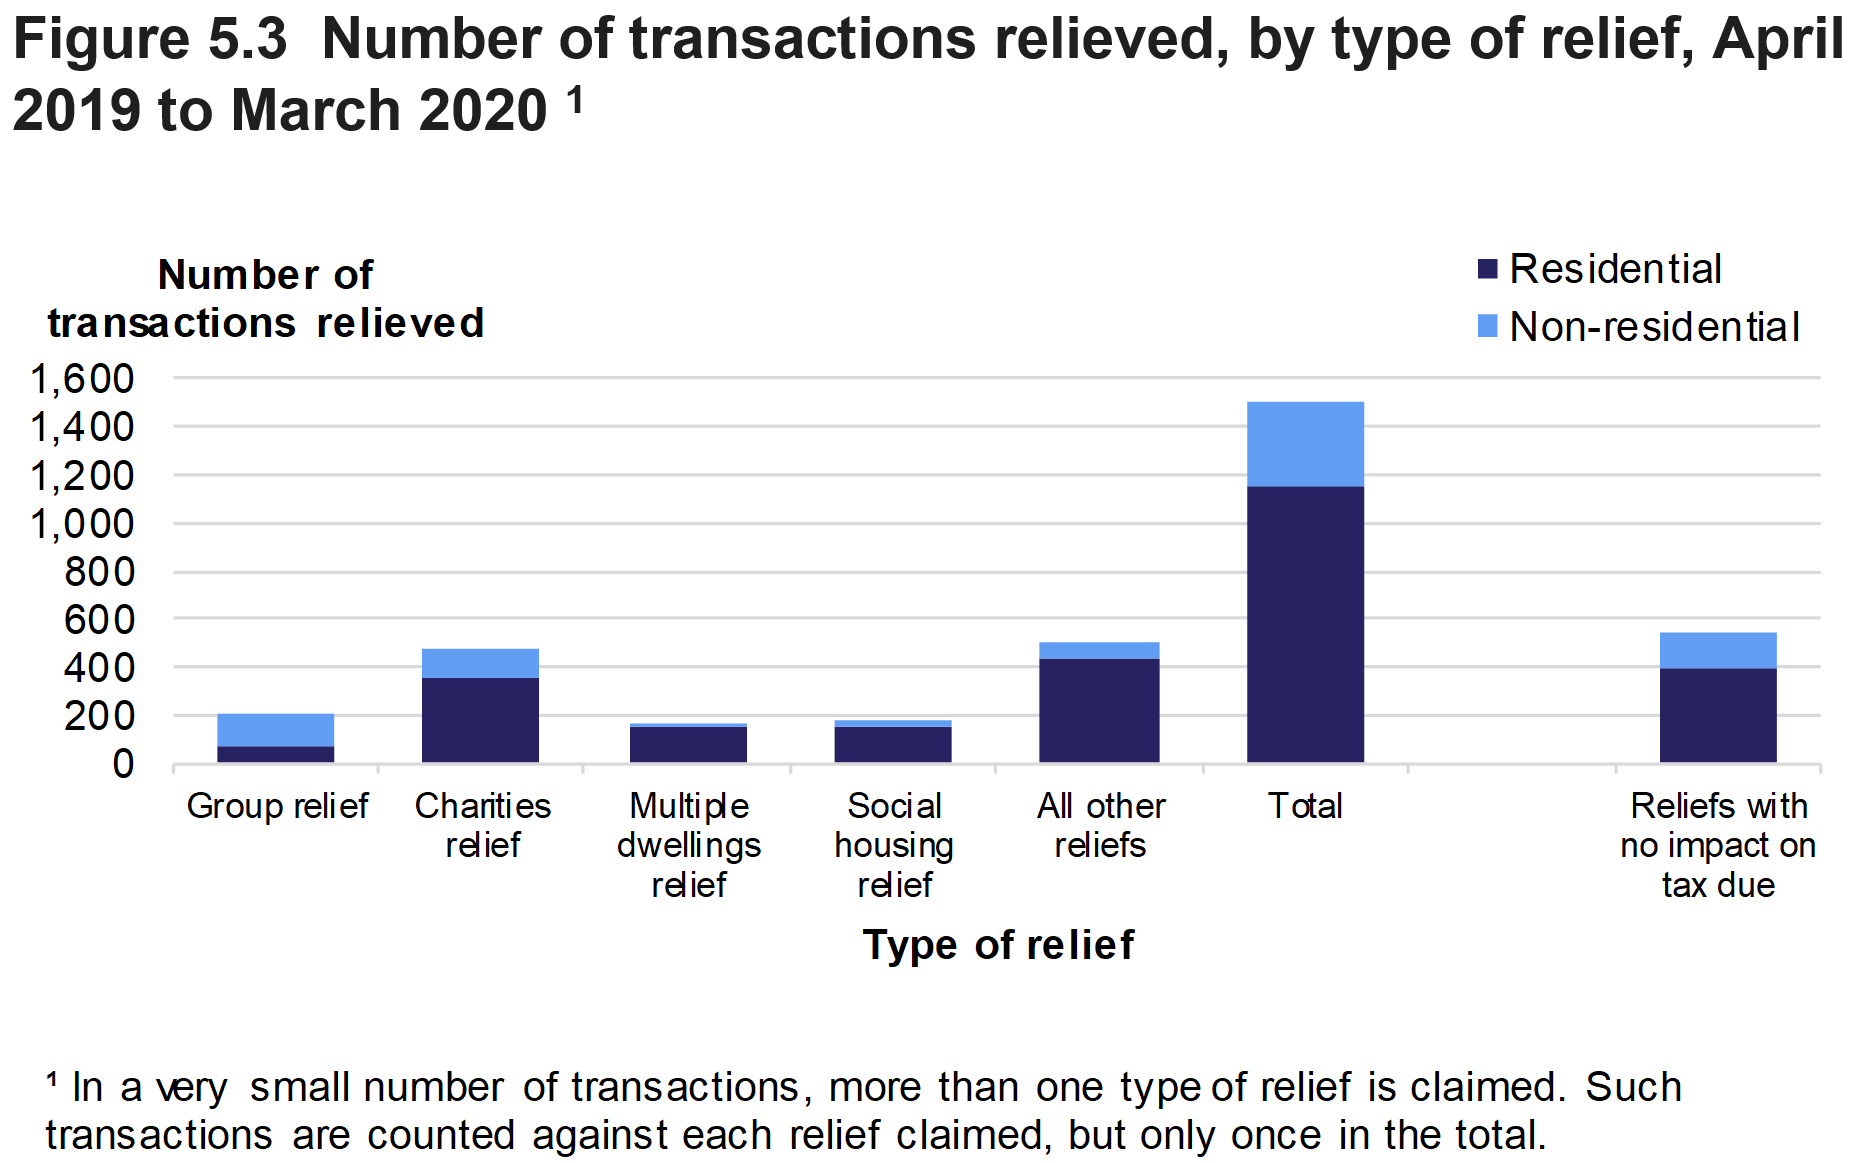 Figure 5.3 shows the number of reliefs applied to residential and non-residential transactions in April 2019 to March 2020, by type of relief. A separate figure is shown for the number of reliefs where the relief had no impact on the tax due.